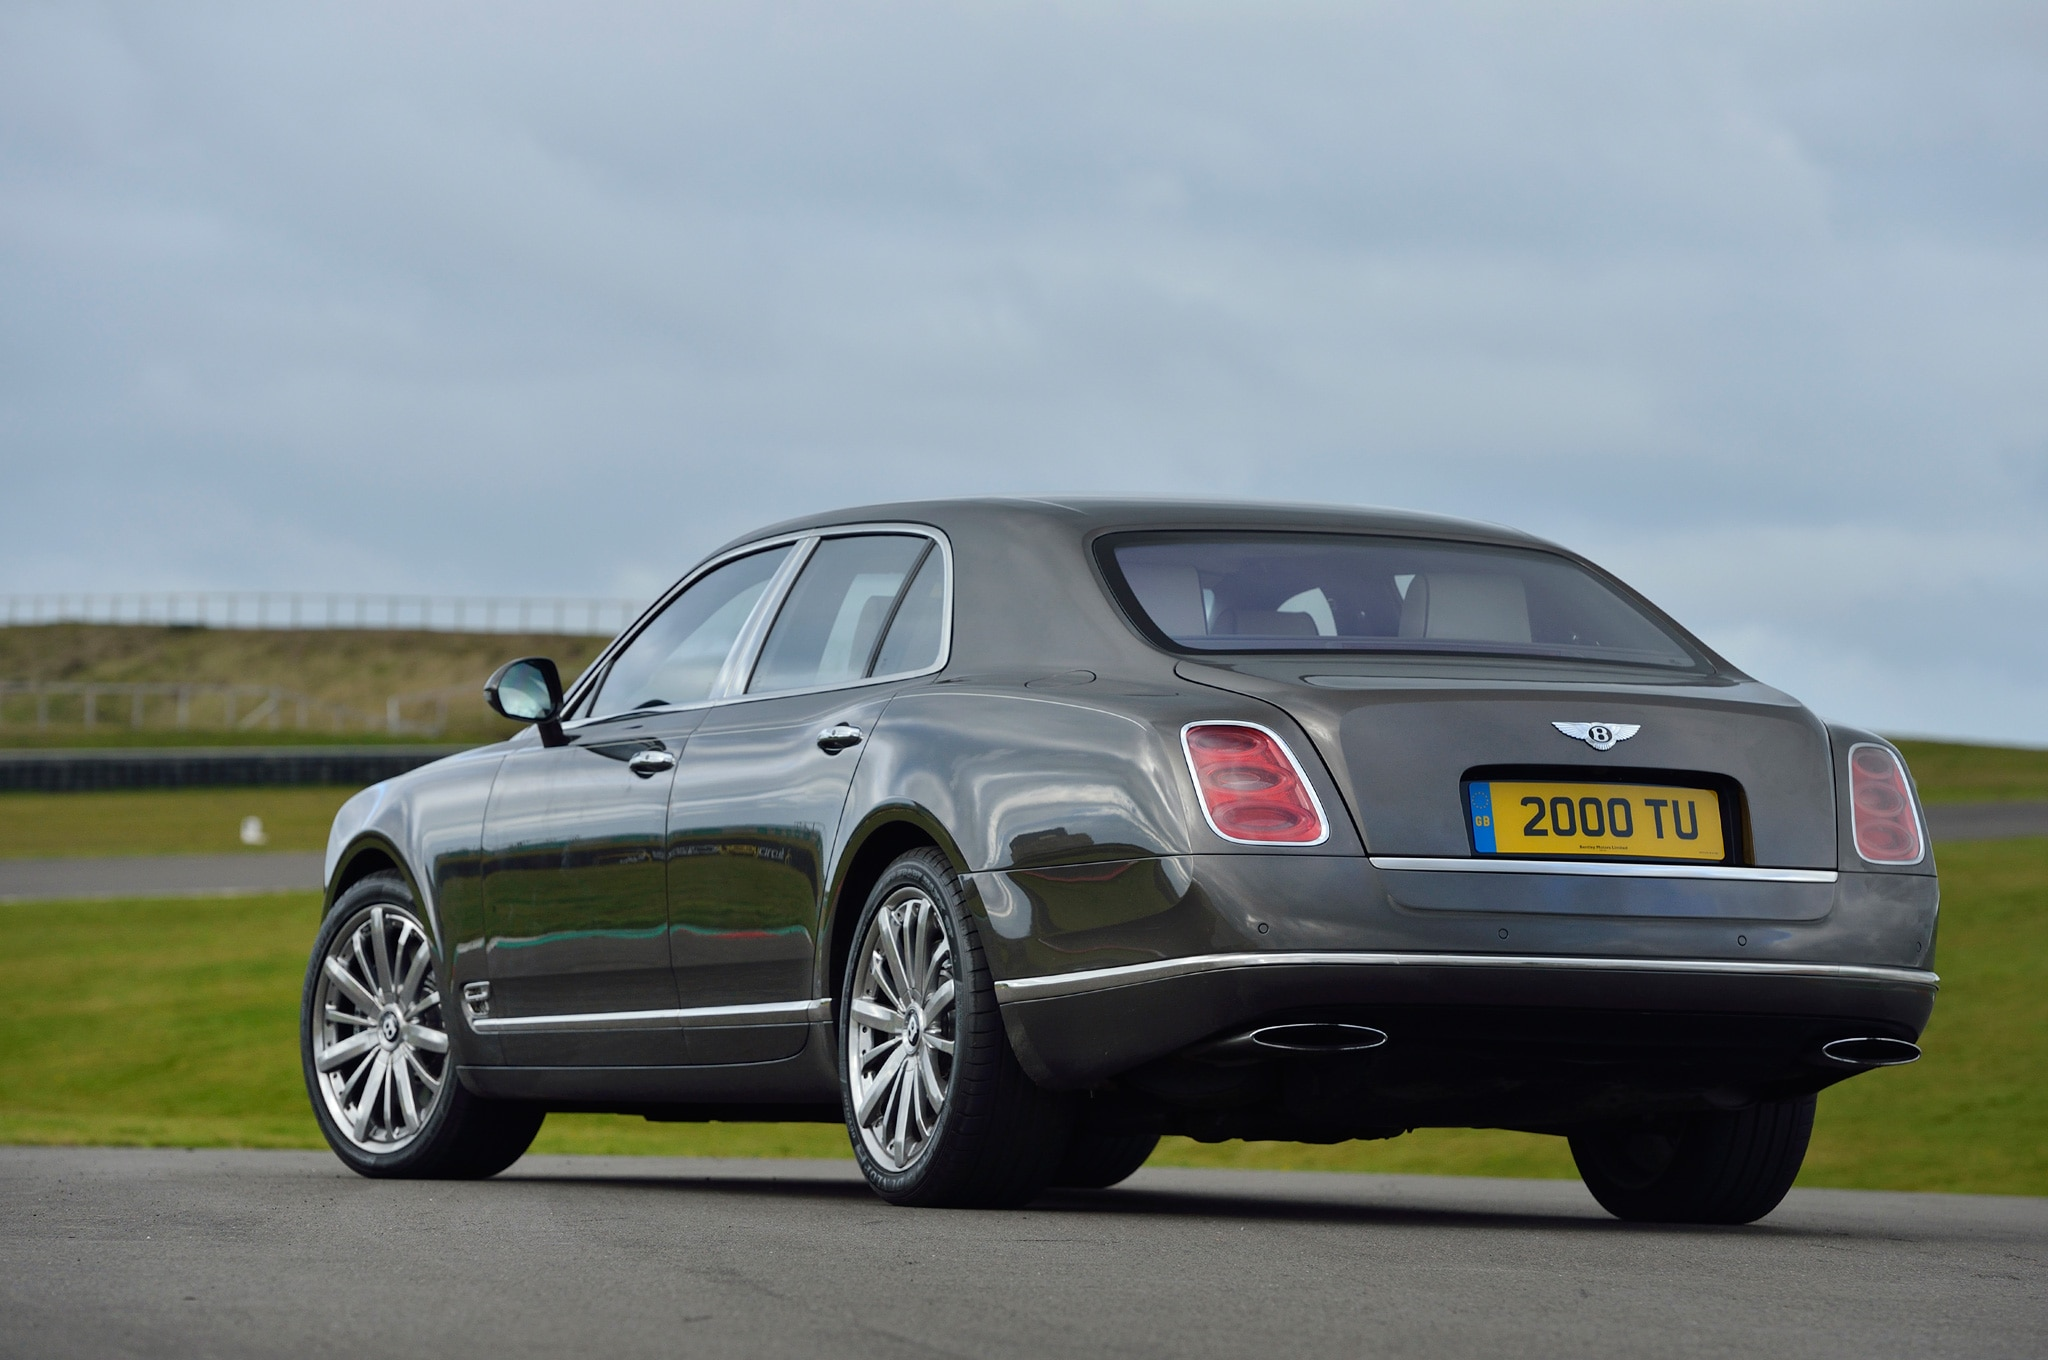 2014 bentley mulsanne adds pillows privacy curtains and wi fi. Black Bedroom Furniture Sets. Home Design Ideas